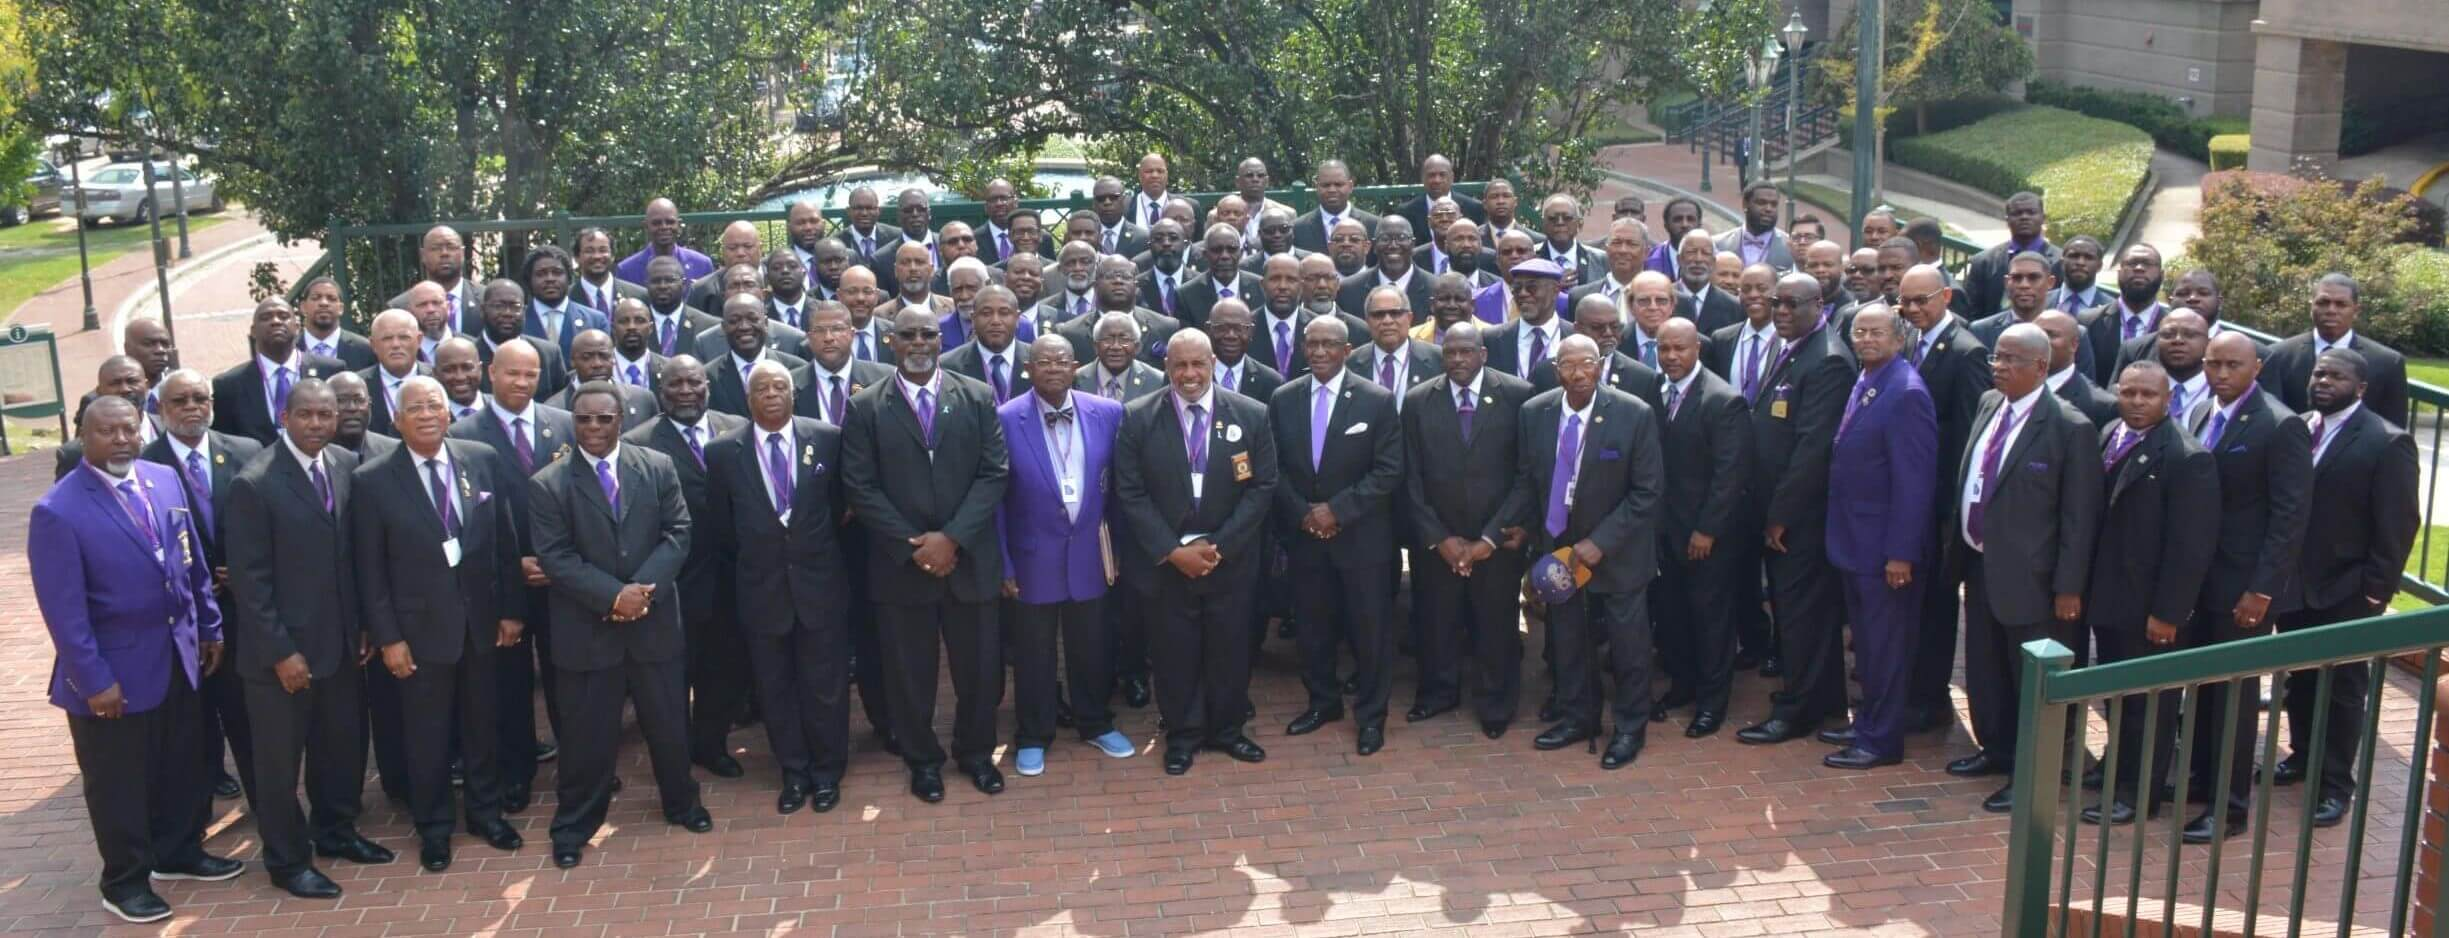 Ga State Organization group photo at the 2018 State Meeting in Augusta